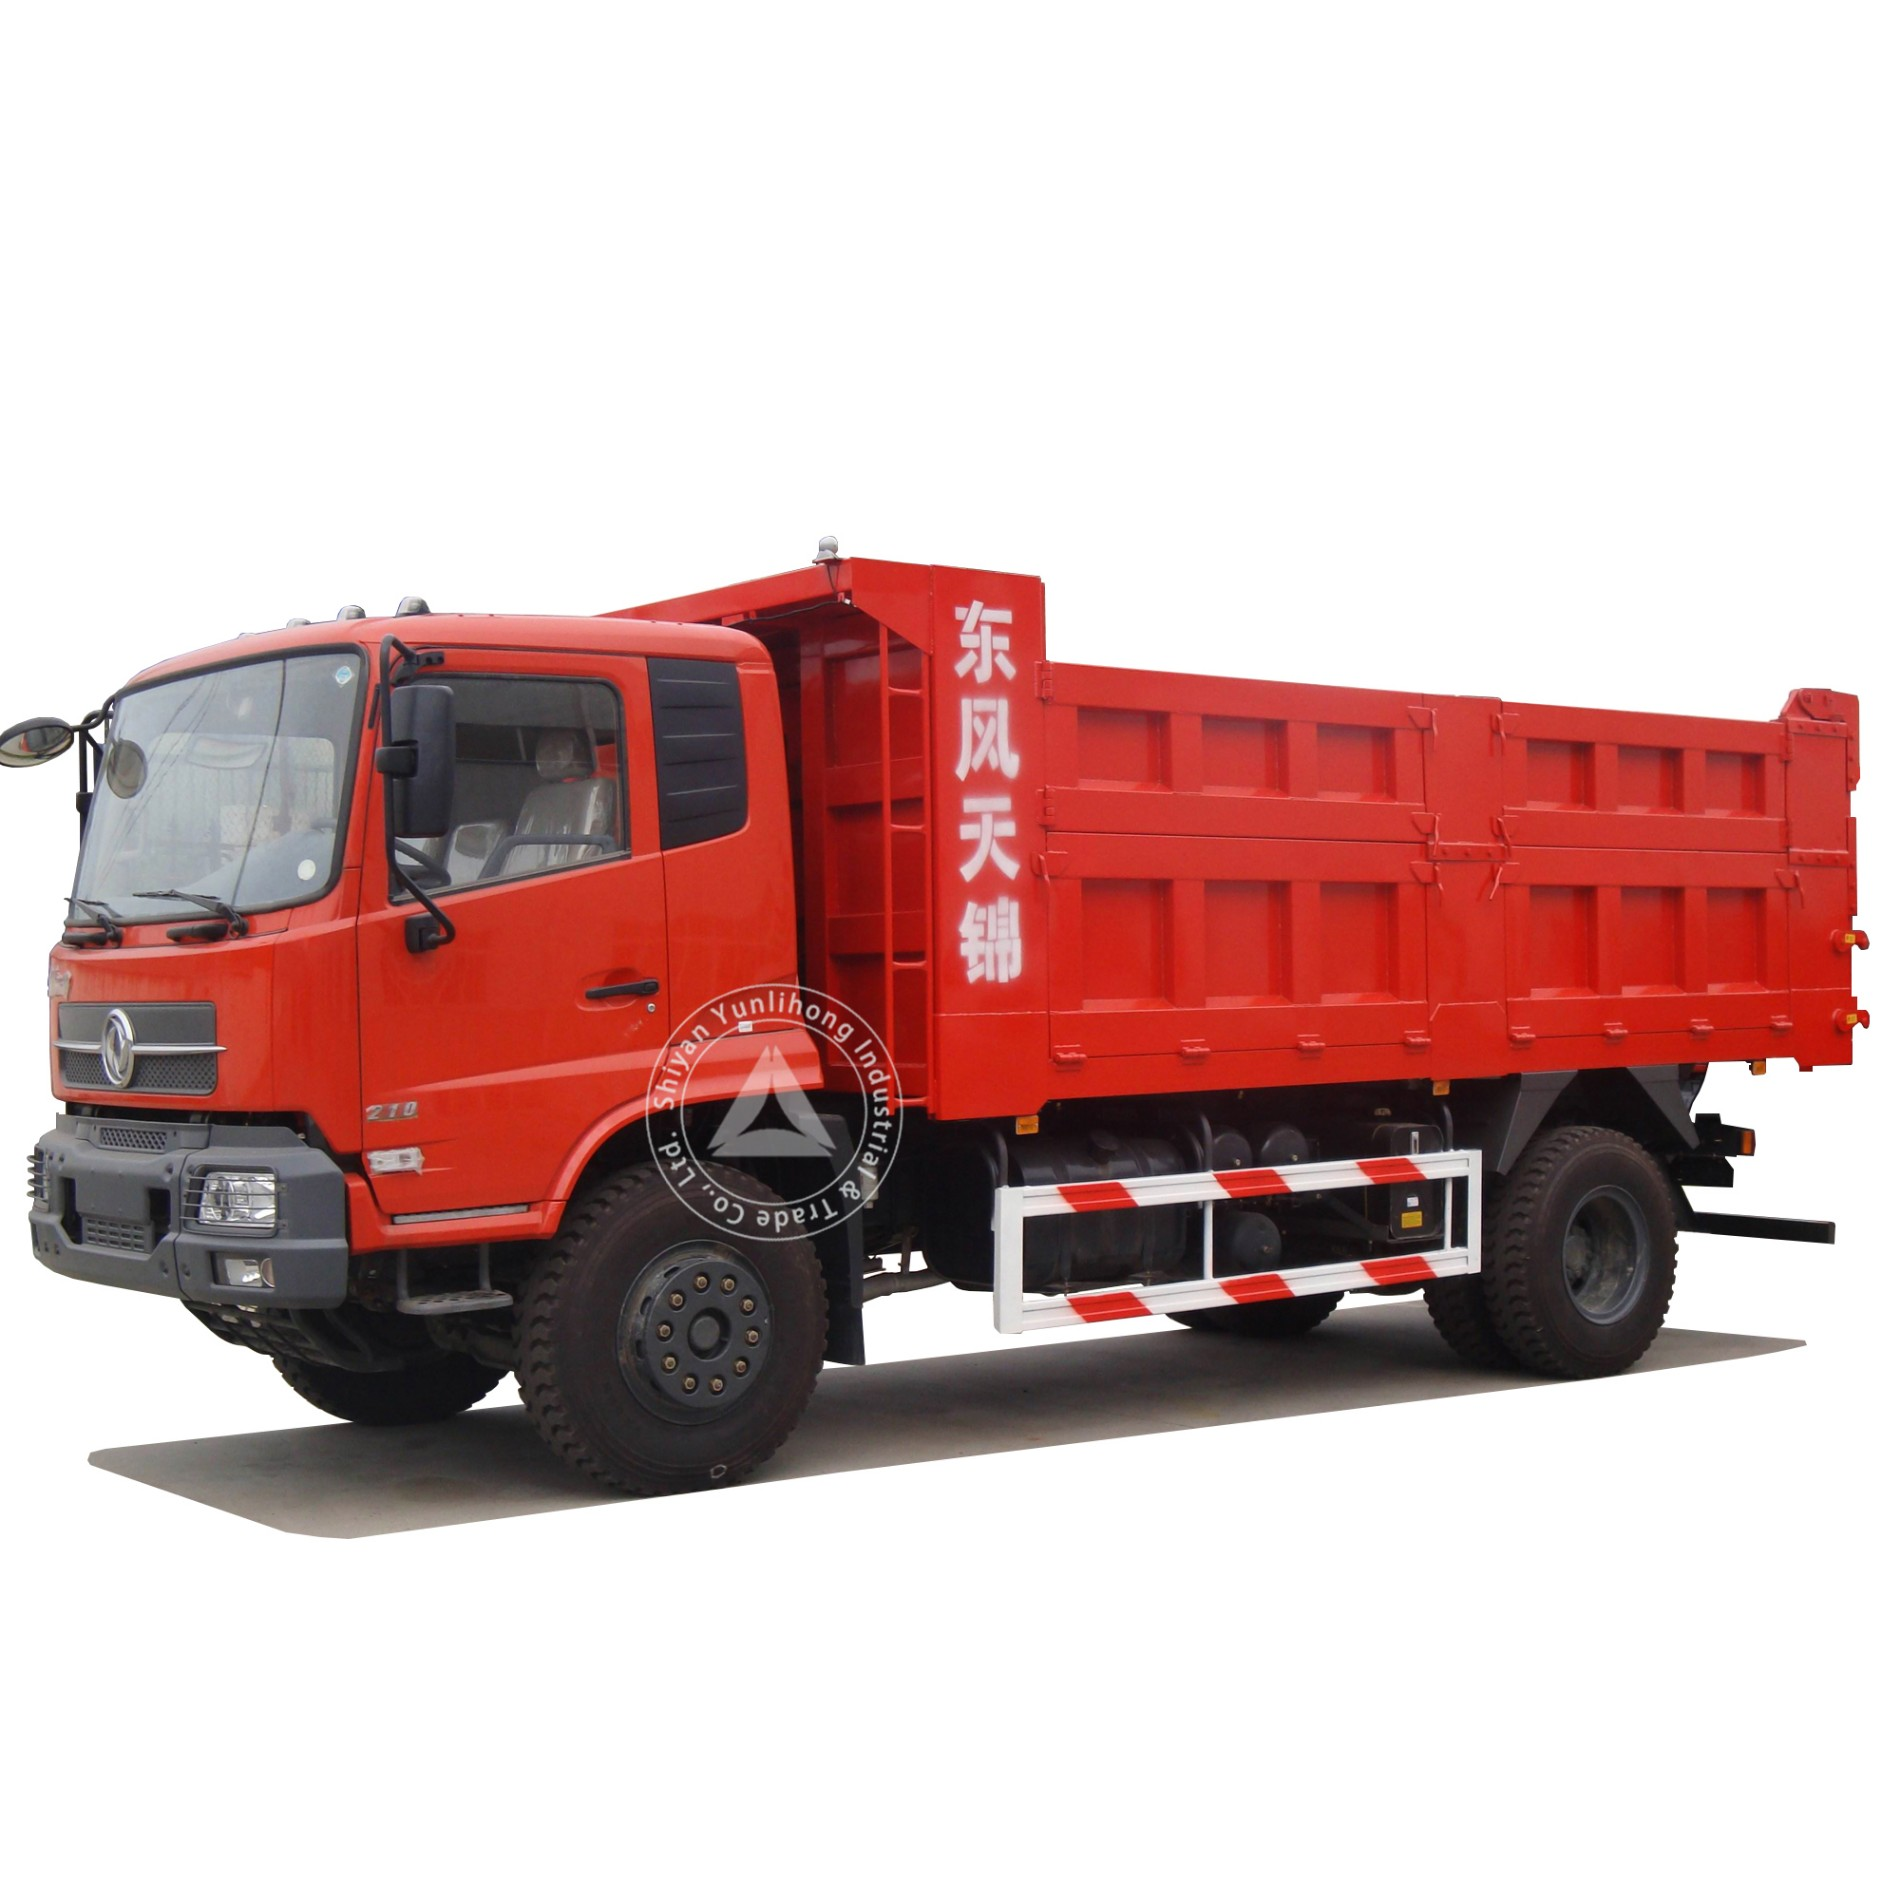 Dongfeng KR 4x2 240hp GVW 19 Ton 9m3 To 11m3 Dump Truck